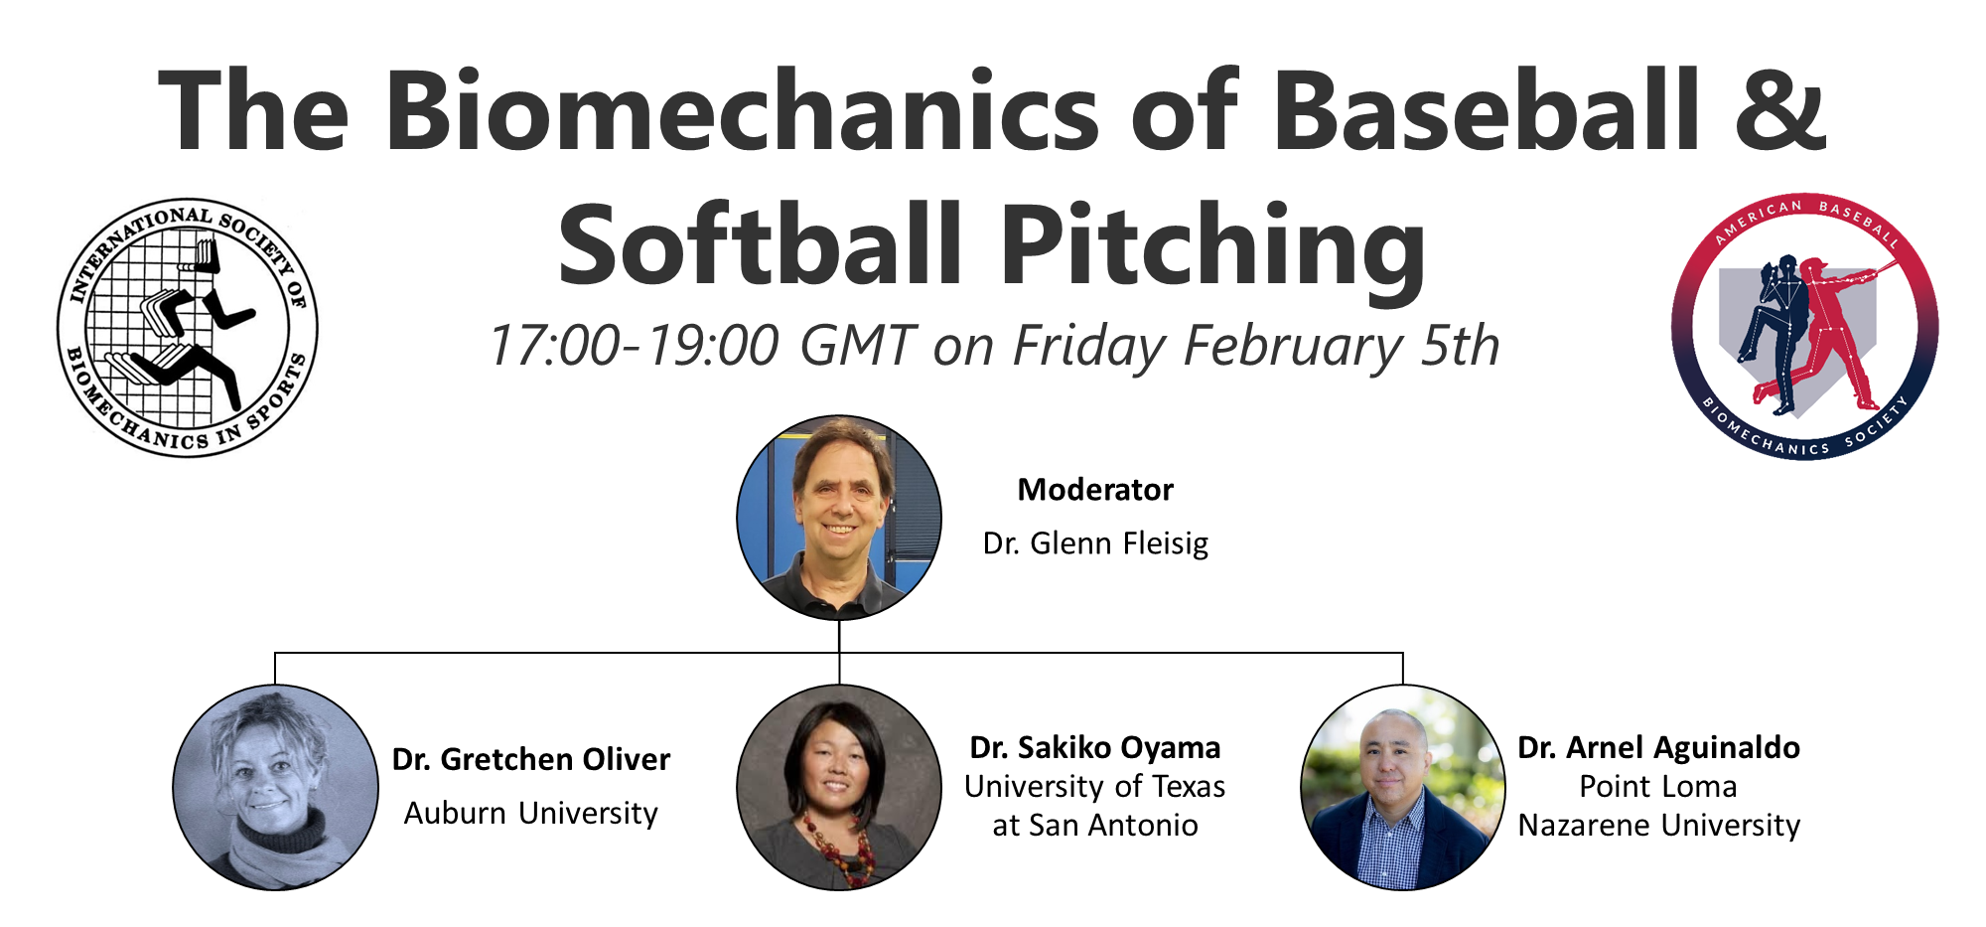 The Biomechanics of Baseball & Softball Pitching. 17:00-19:00 GMT on Friday February 5th. Moderator Dr. Glenn Fleisig. Speakers: Dr. Gretchen Oliver Auburn University, Dr. Sakiko Oyama University of Texas at San Antonio, Dr. Arnel Aguinaldo Point Loma Nazarene University.